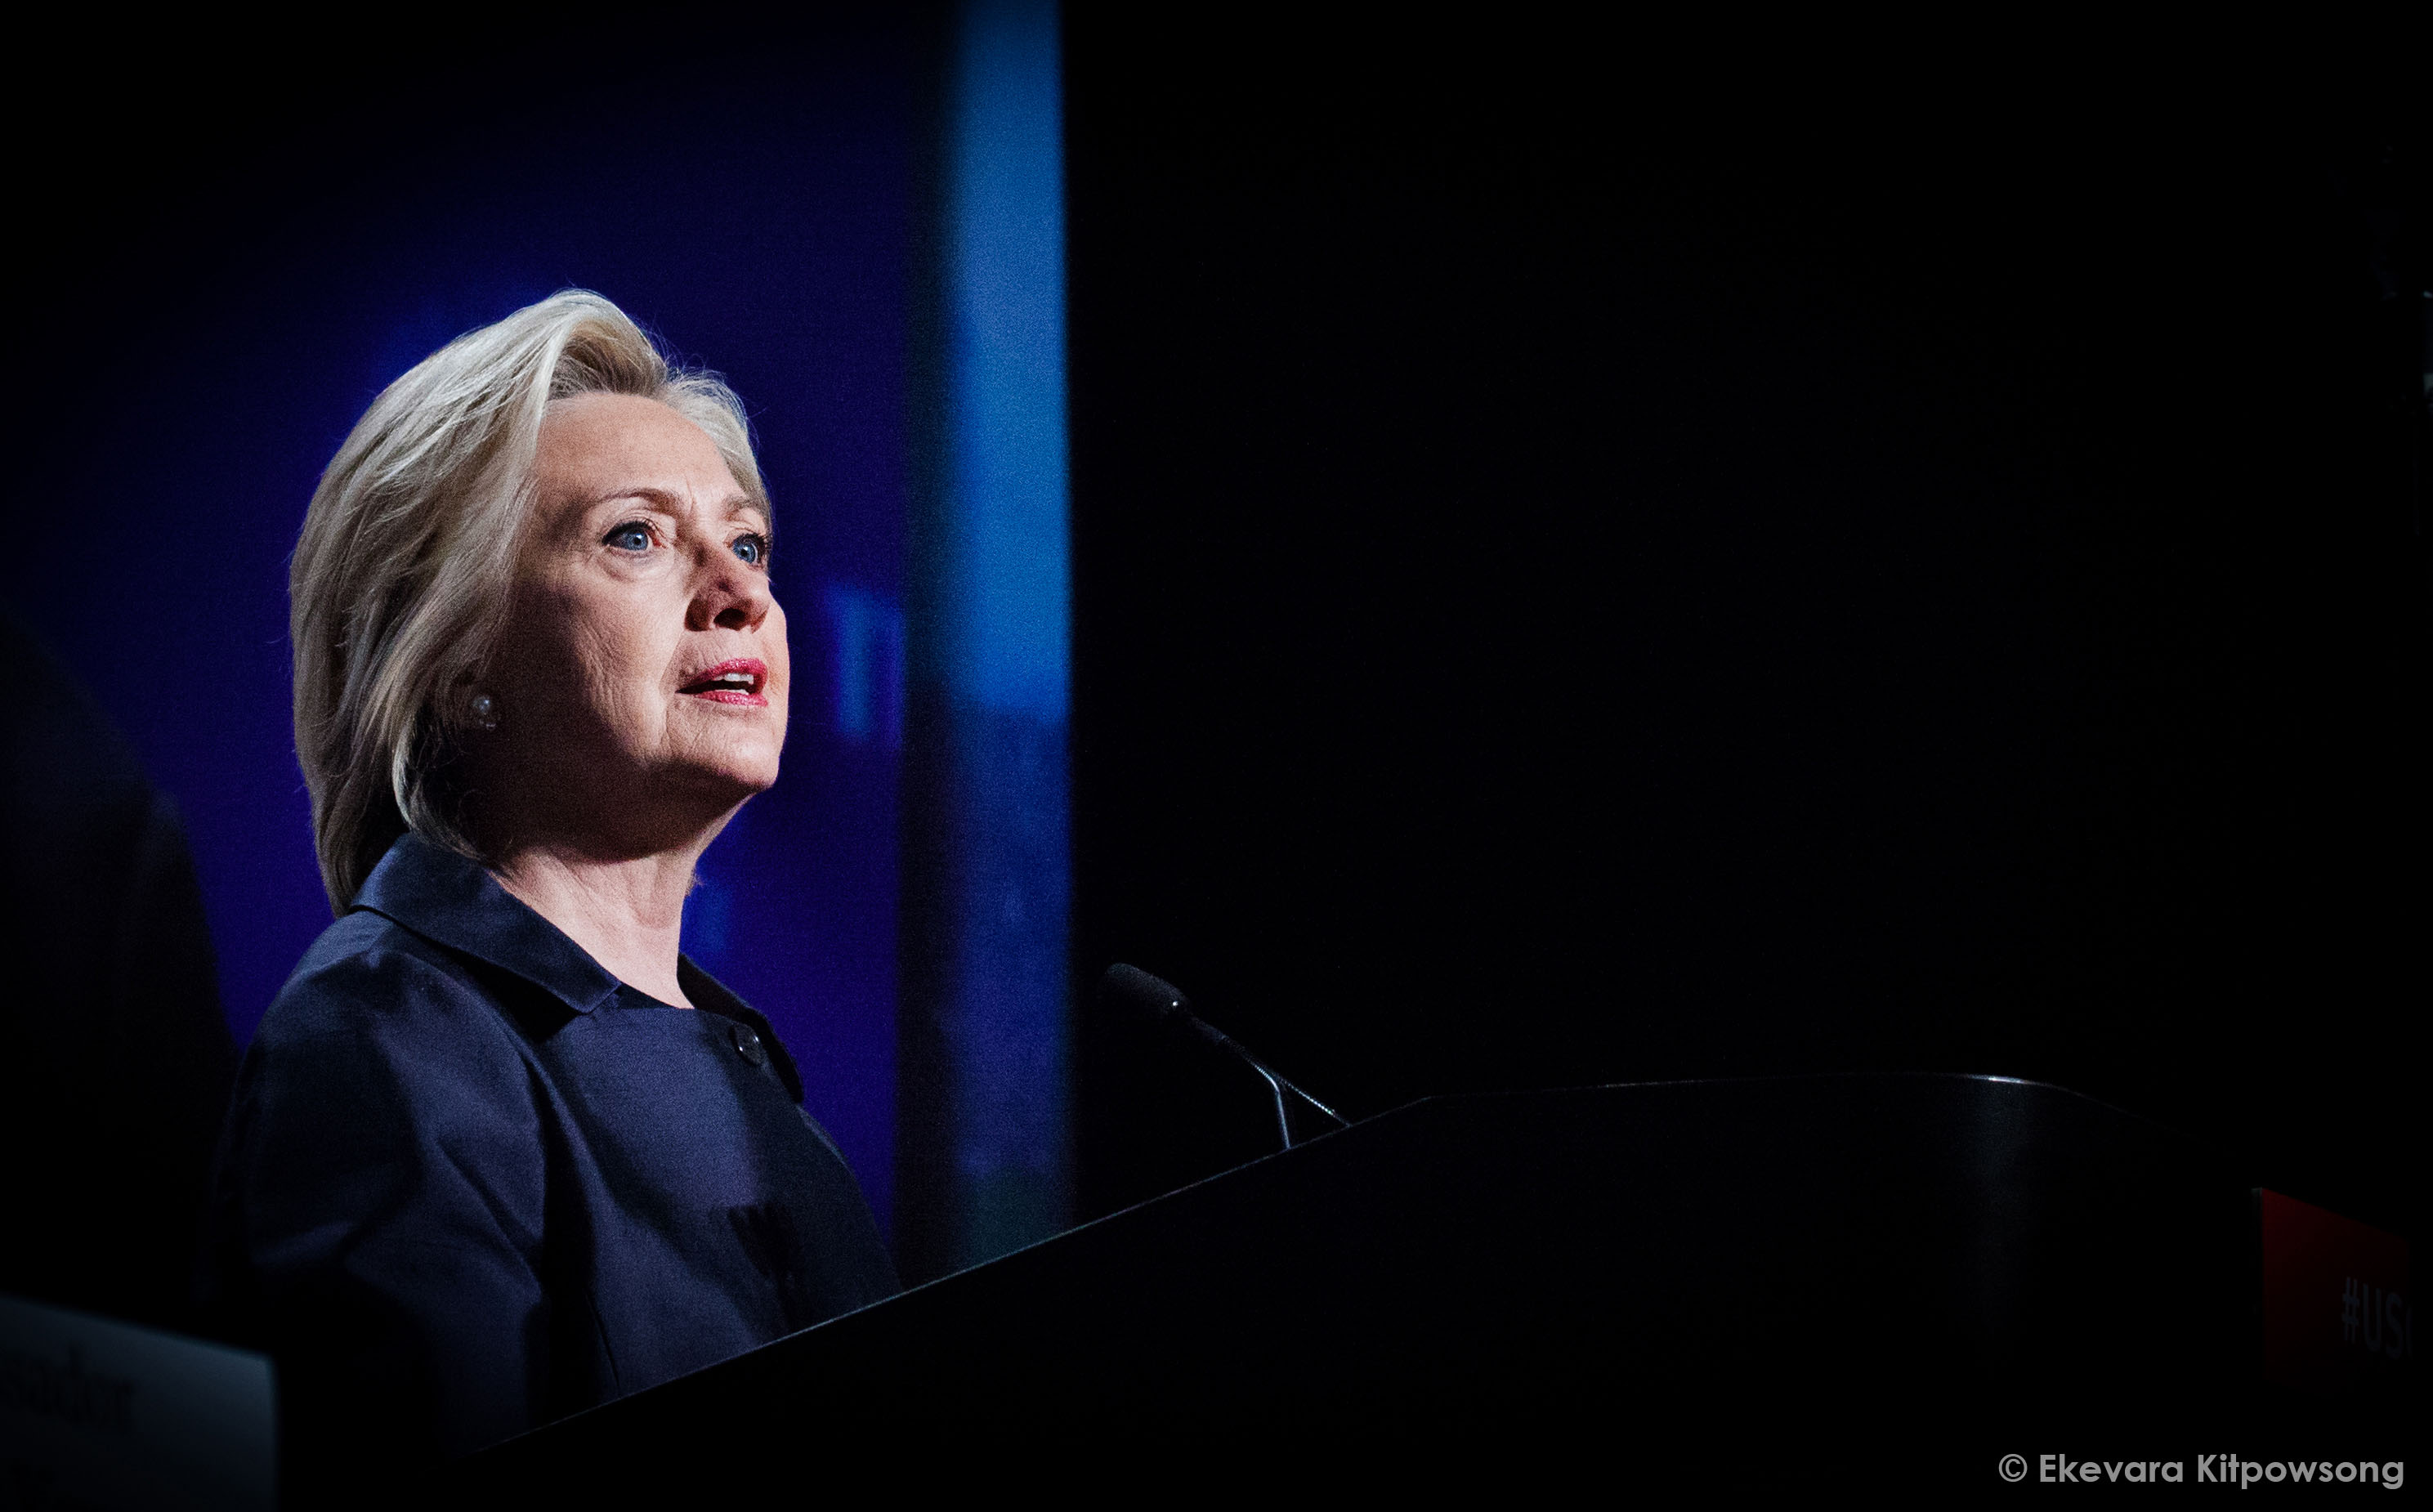 Democratic presidential candidate Hillary Clinton speaks at the U.S. Conference of Mayors in San Francisco on Saturday, June 20, 2015. (Photo by Ekevara Kitpowsong / The Guardsman)